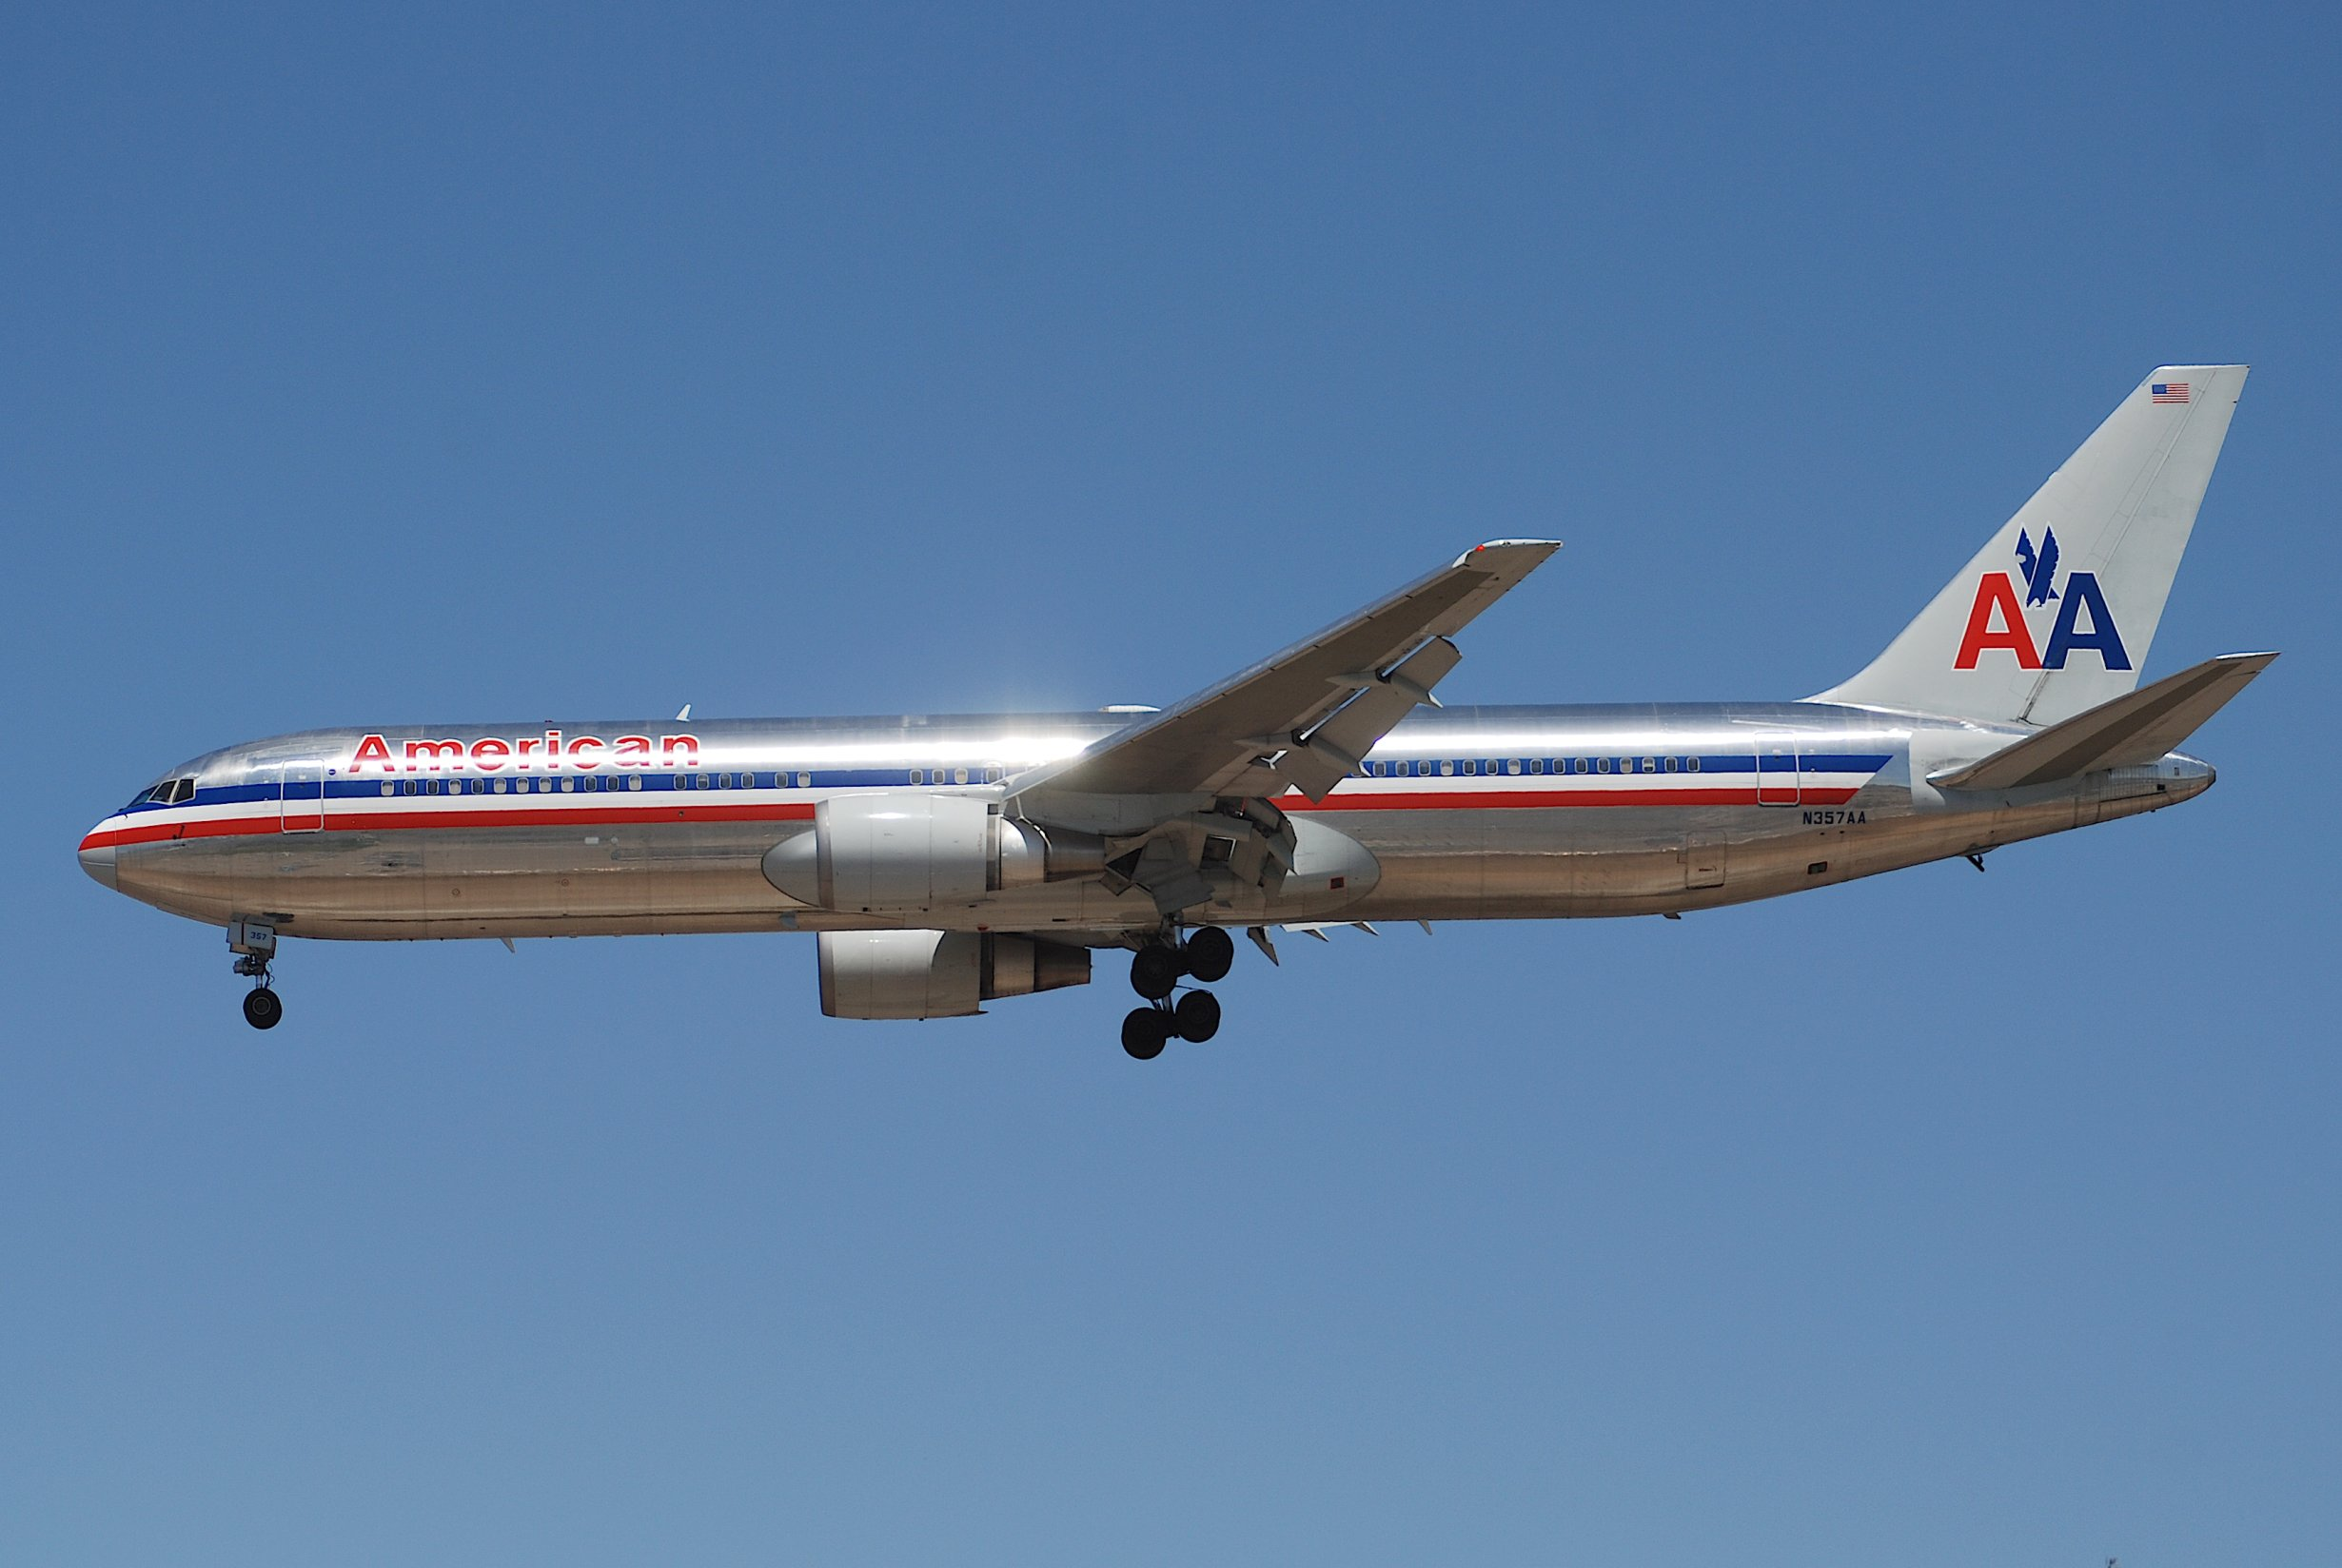 File:American Airlines Boeing 767-300; N357AA@LAX;18.04 ...